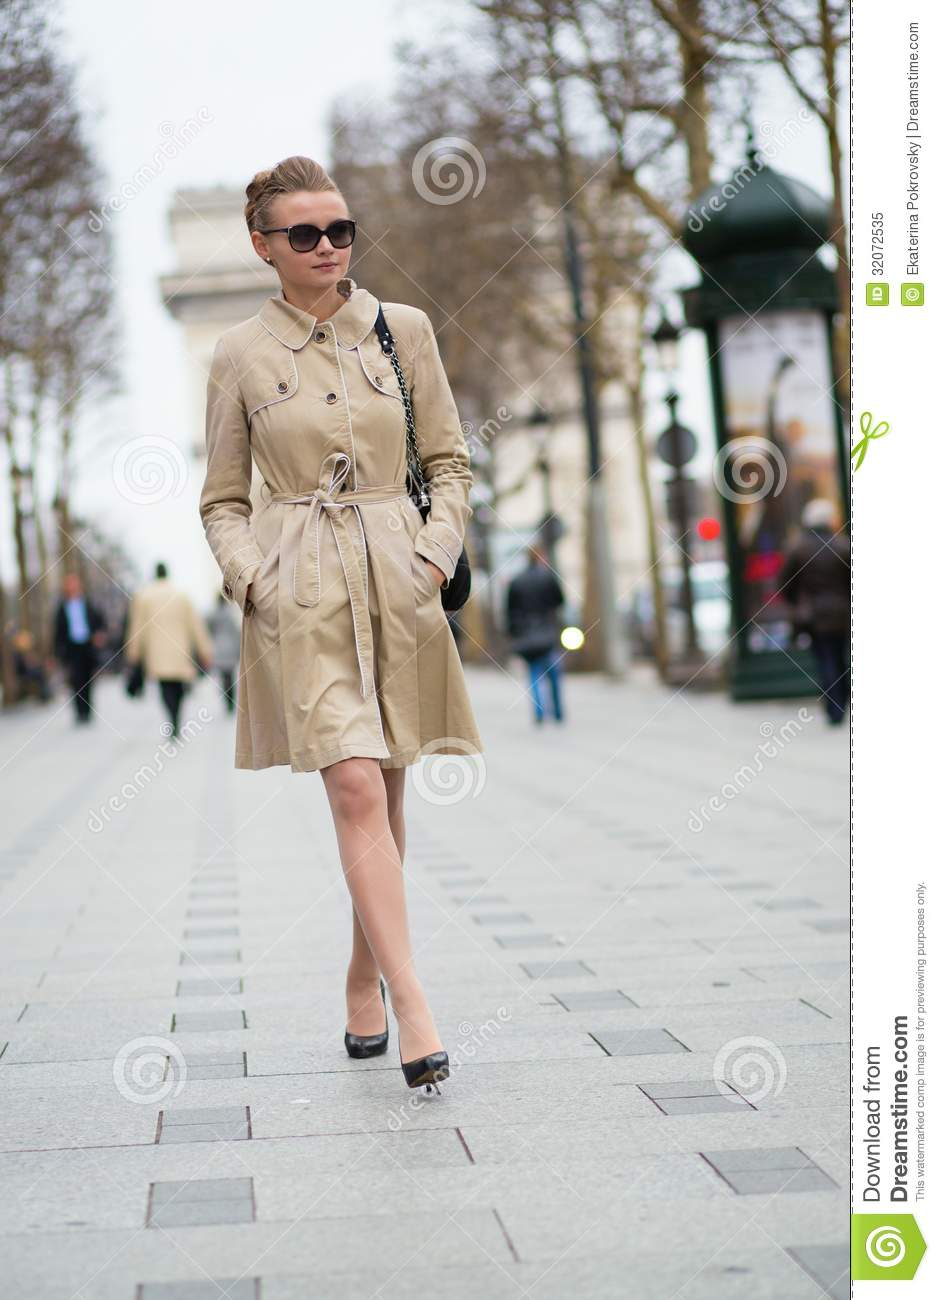 Elegant Parisian Woman On The Street Stock Image Image